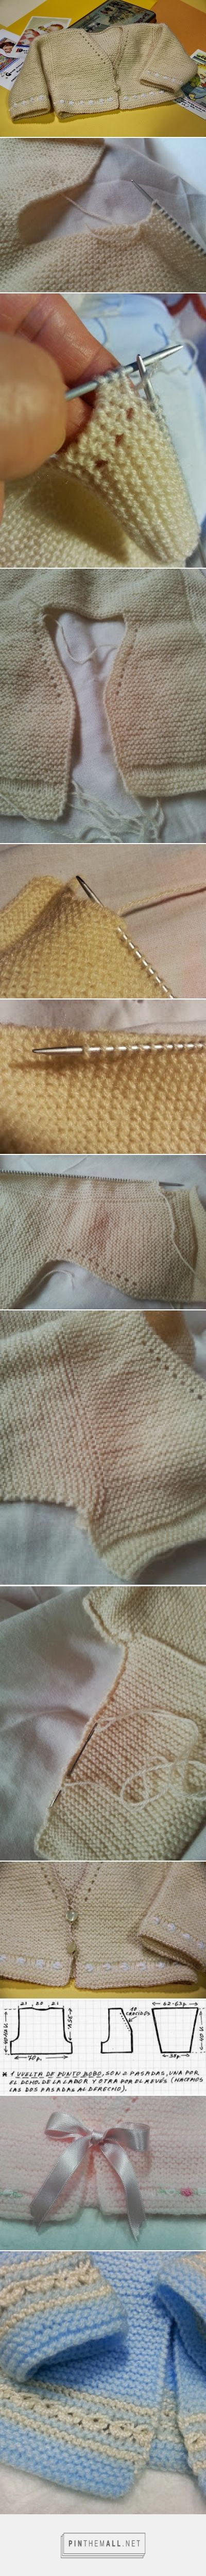 Basic baby cardigan in garter stitch; step by step photos, full instructions in Spanish. Note how to pick up stiches on the side for sleeve and optional embellishments (small bow, 1 repeat Punto de Malta or broomstick lace) ~~ http://liandolaborespunto.blogspot.com/2013/11/chaquetita-basica-bebe.html ~~ Emilia y sus labores de punto: chaquetita básica bebé